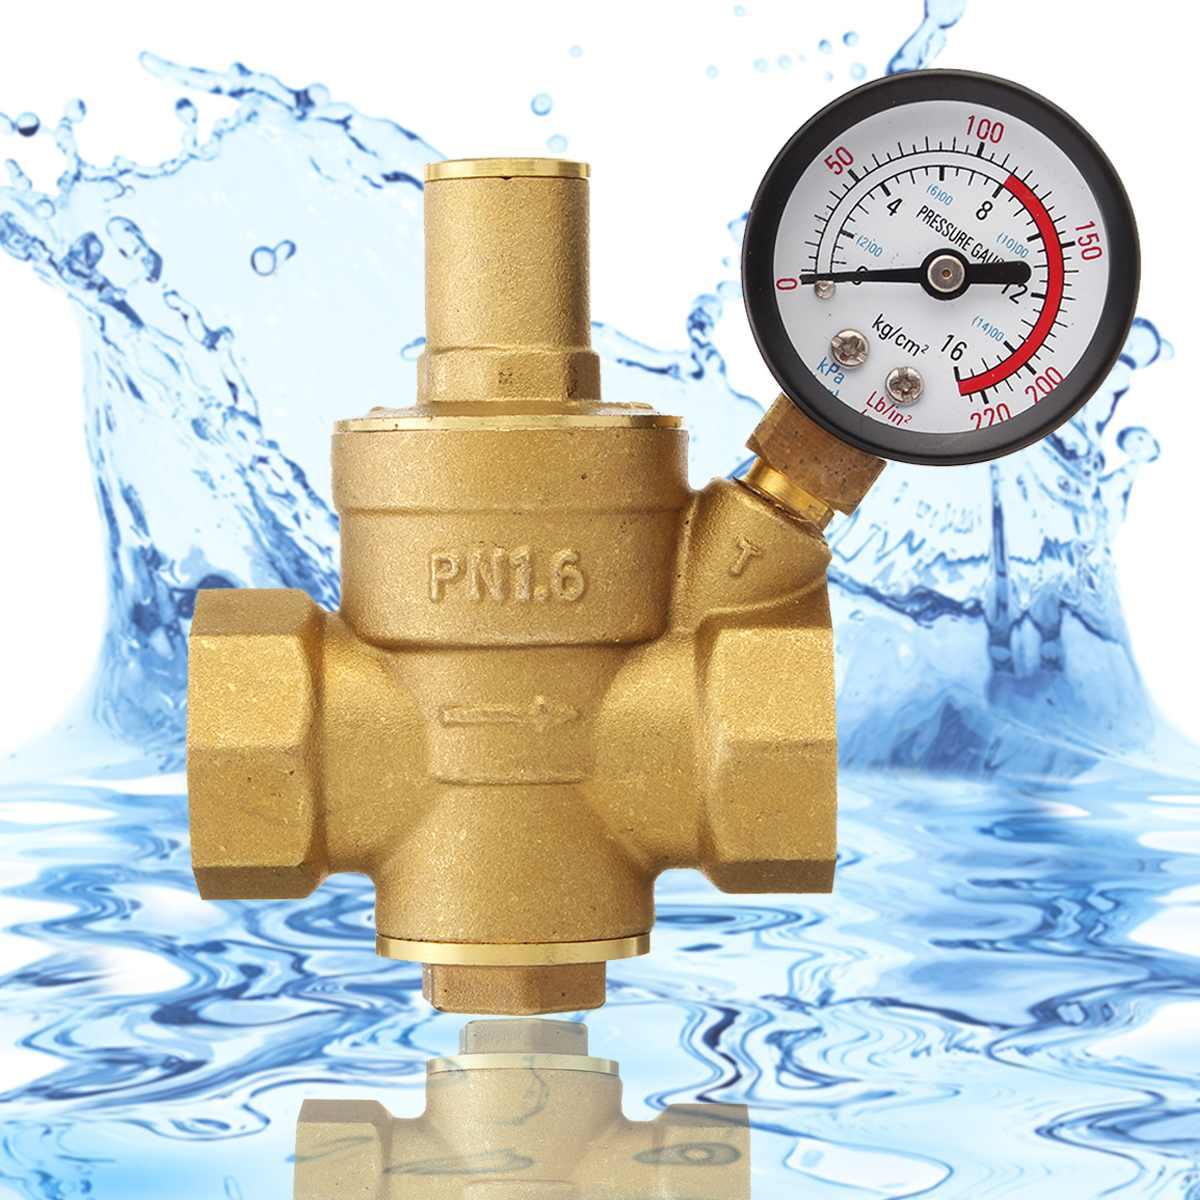 DN20 3/4 Adjustable Relief Valve Brass Water Pressure Reducing Maintaining Valves Pressure Gauge Regulator Reducer Gauge MeterDN20 3/4 Adjustable Relief Valve Brass Water Pressure Reducing Maintaining Valves Pressure Gauge Regulator Reducer Gauge Meter